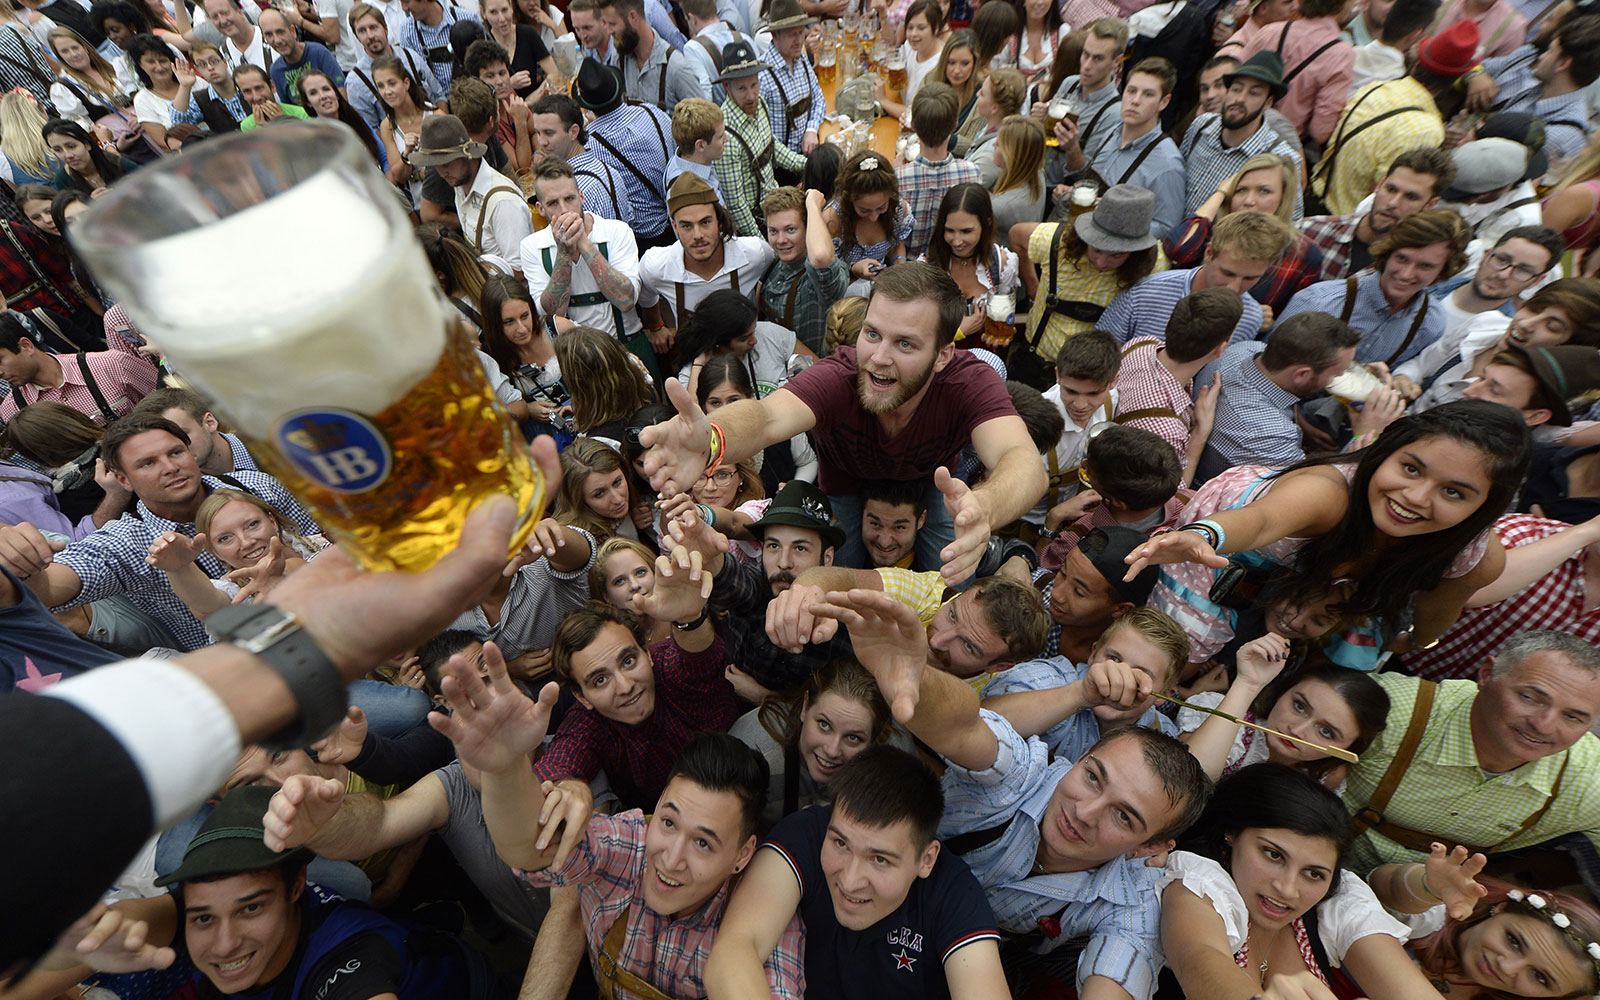 The Tapping of the Oktoberfest Keg